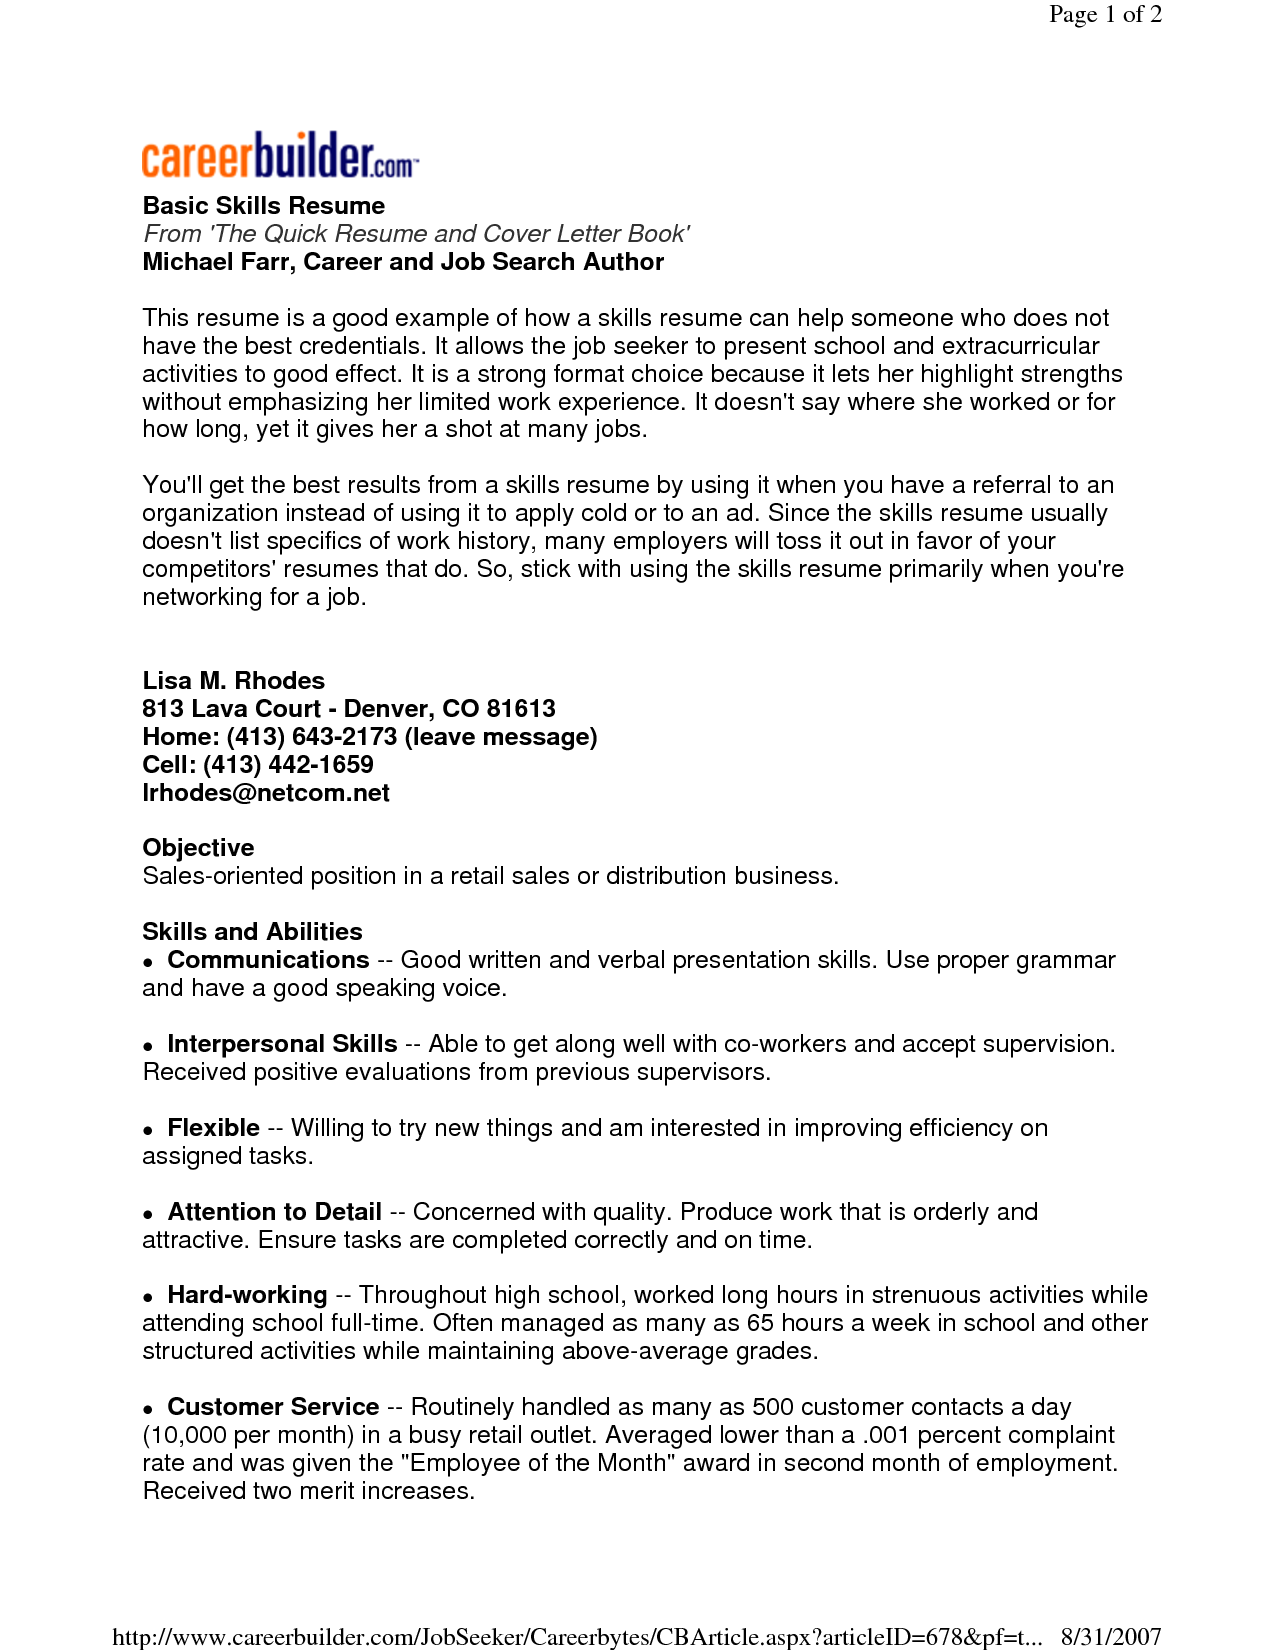 Find here the sample resume that best fits your profile in order to ...